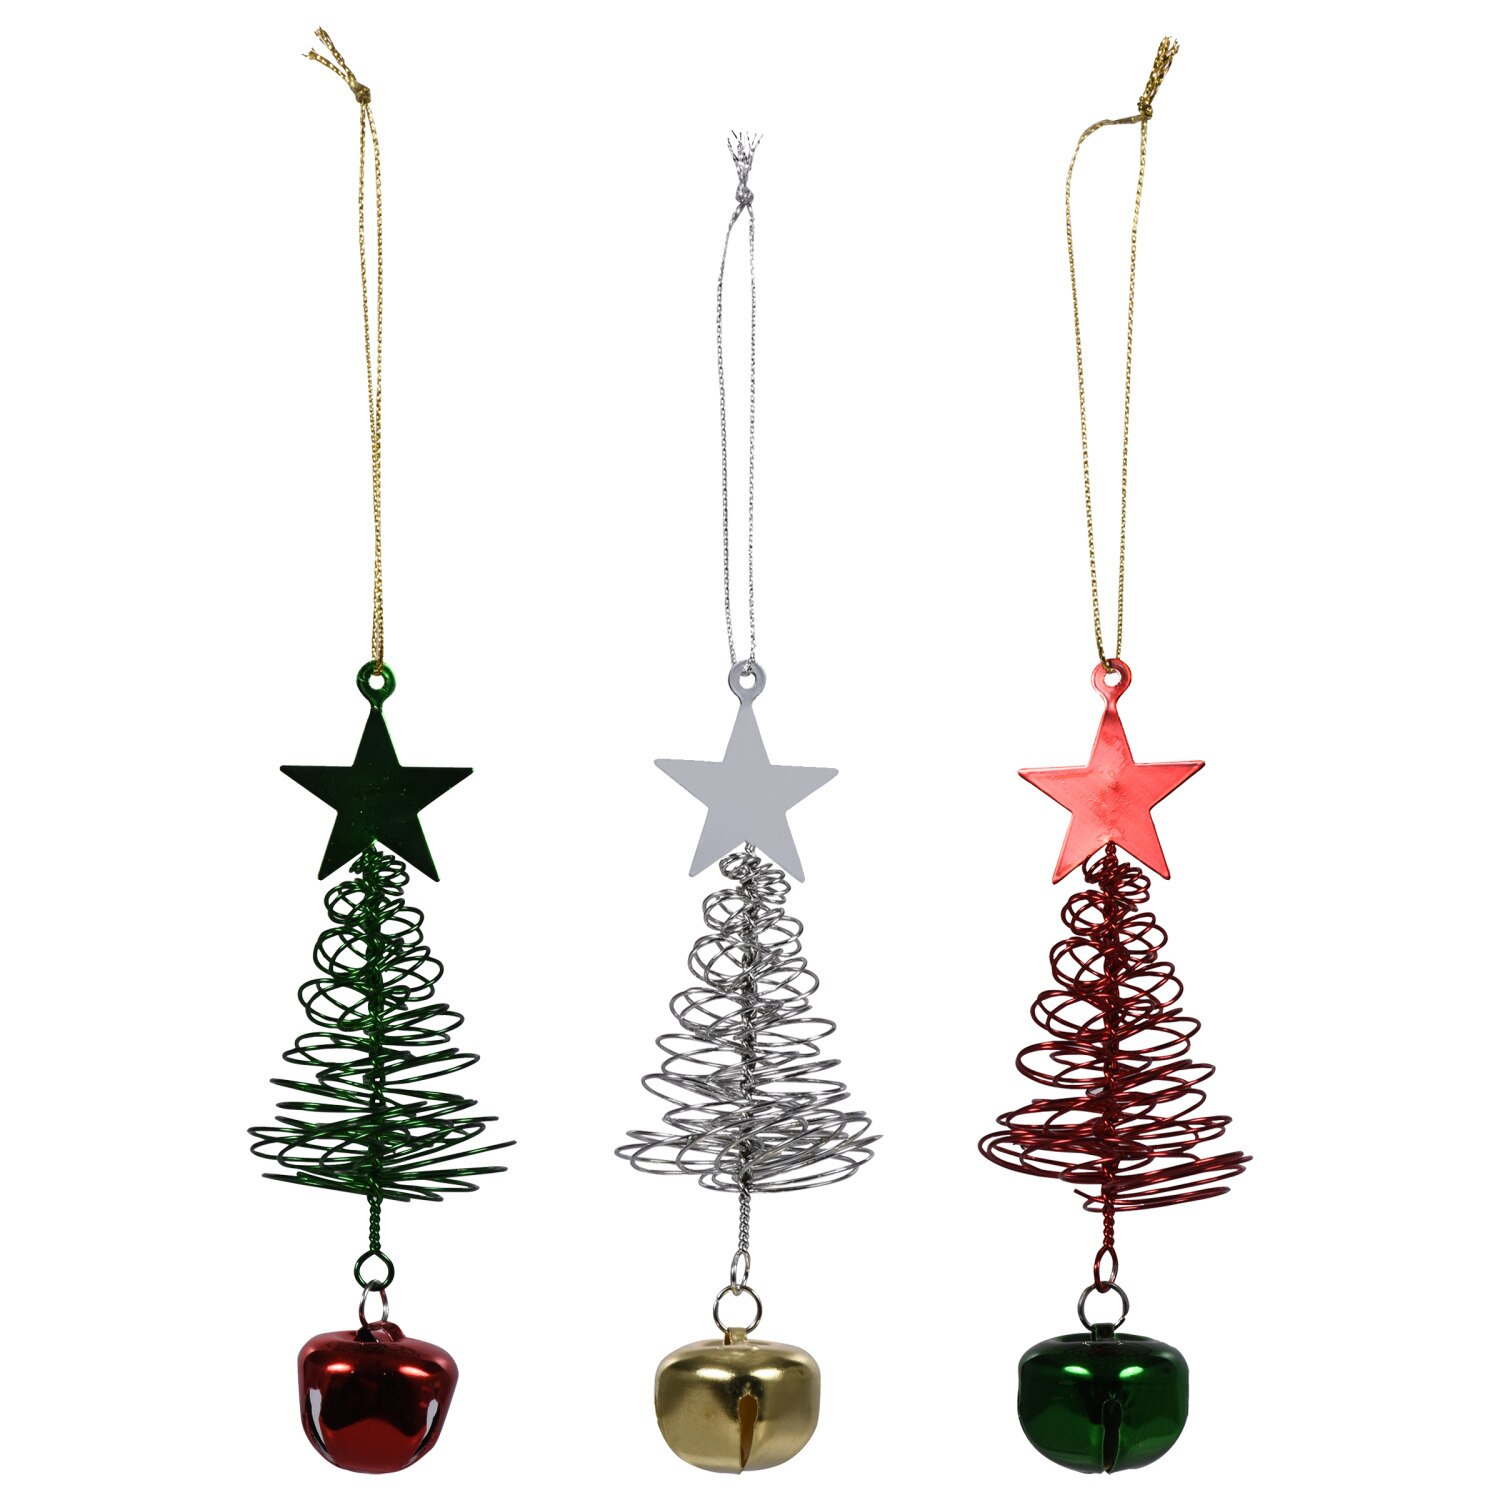 6//10PCS Christmas Ornament Tree Glitter 3D Butterfly Hanging Home Xmas Decor